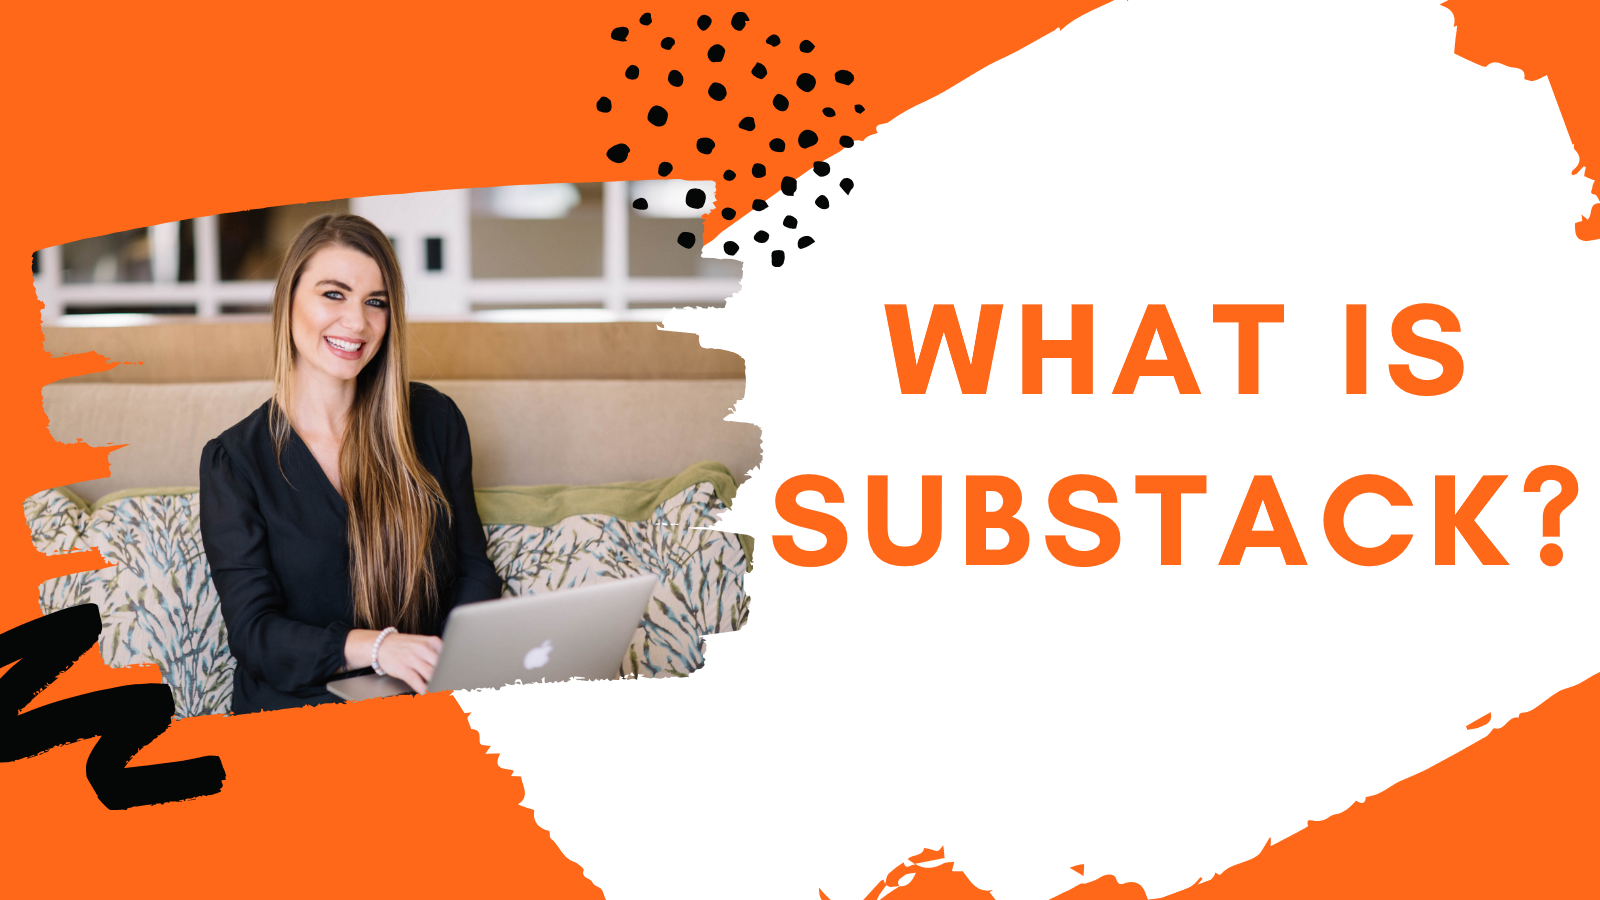 what is substack, substack faq, substack pricing, substack vs mailchimp, substack review, best substack newsletters, substack